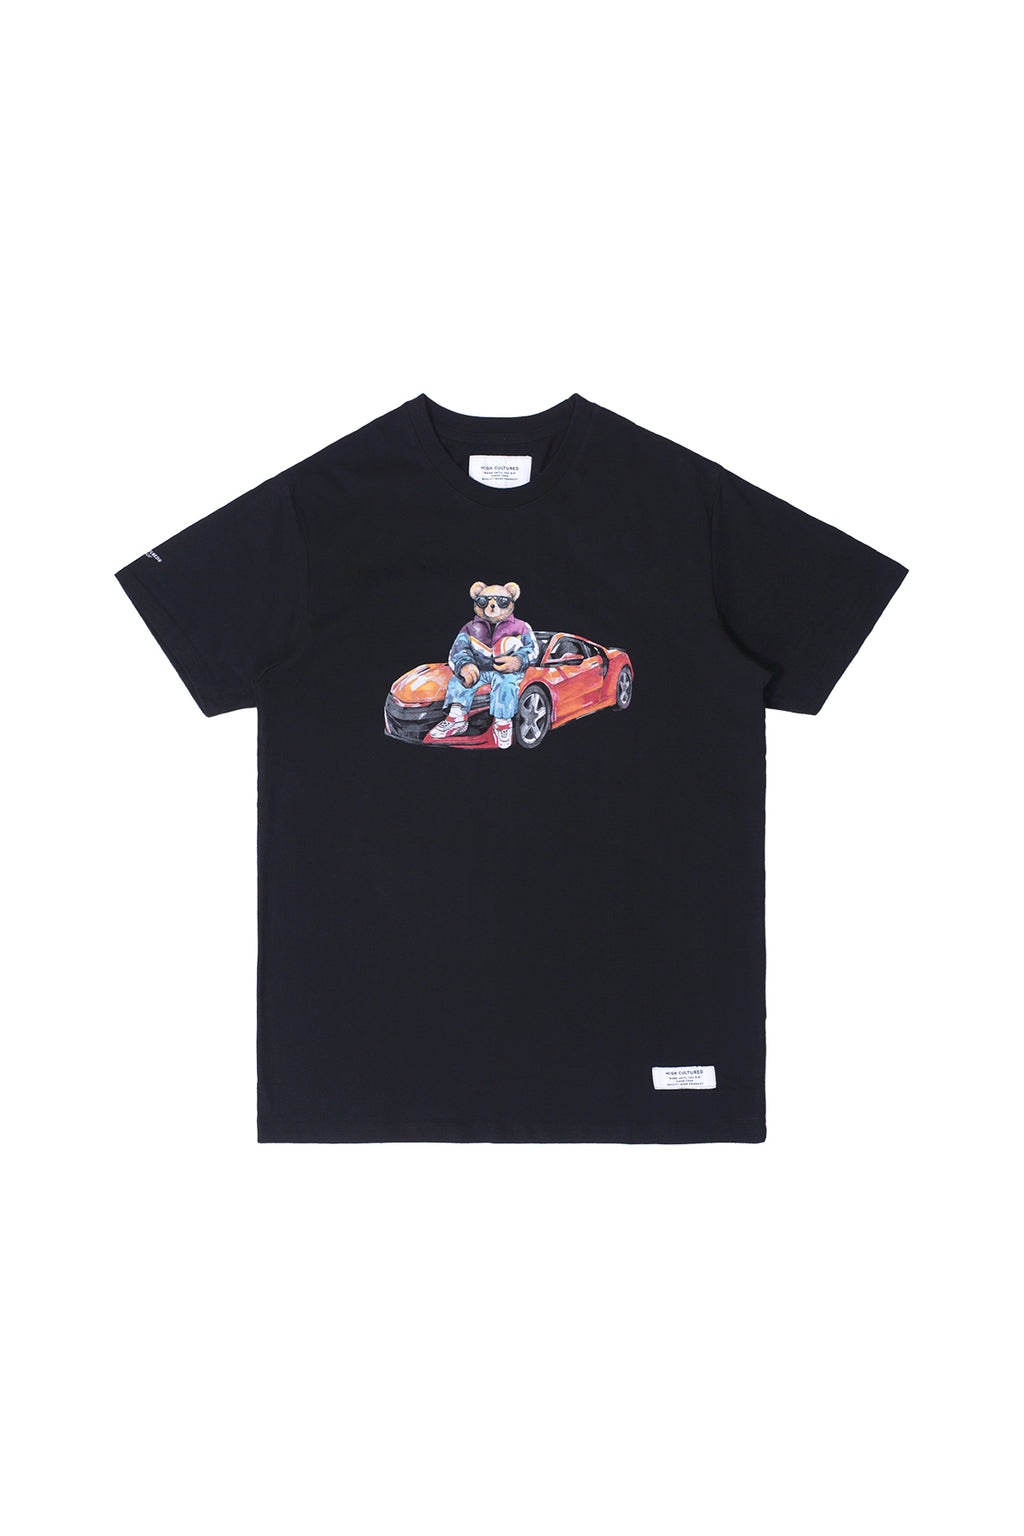 """LUKE, THE CAR RACER BEAR"" TEE 